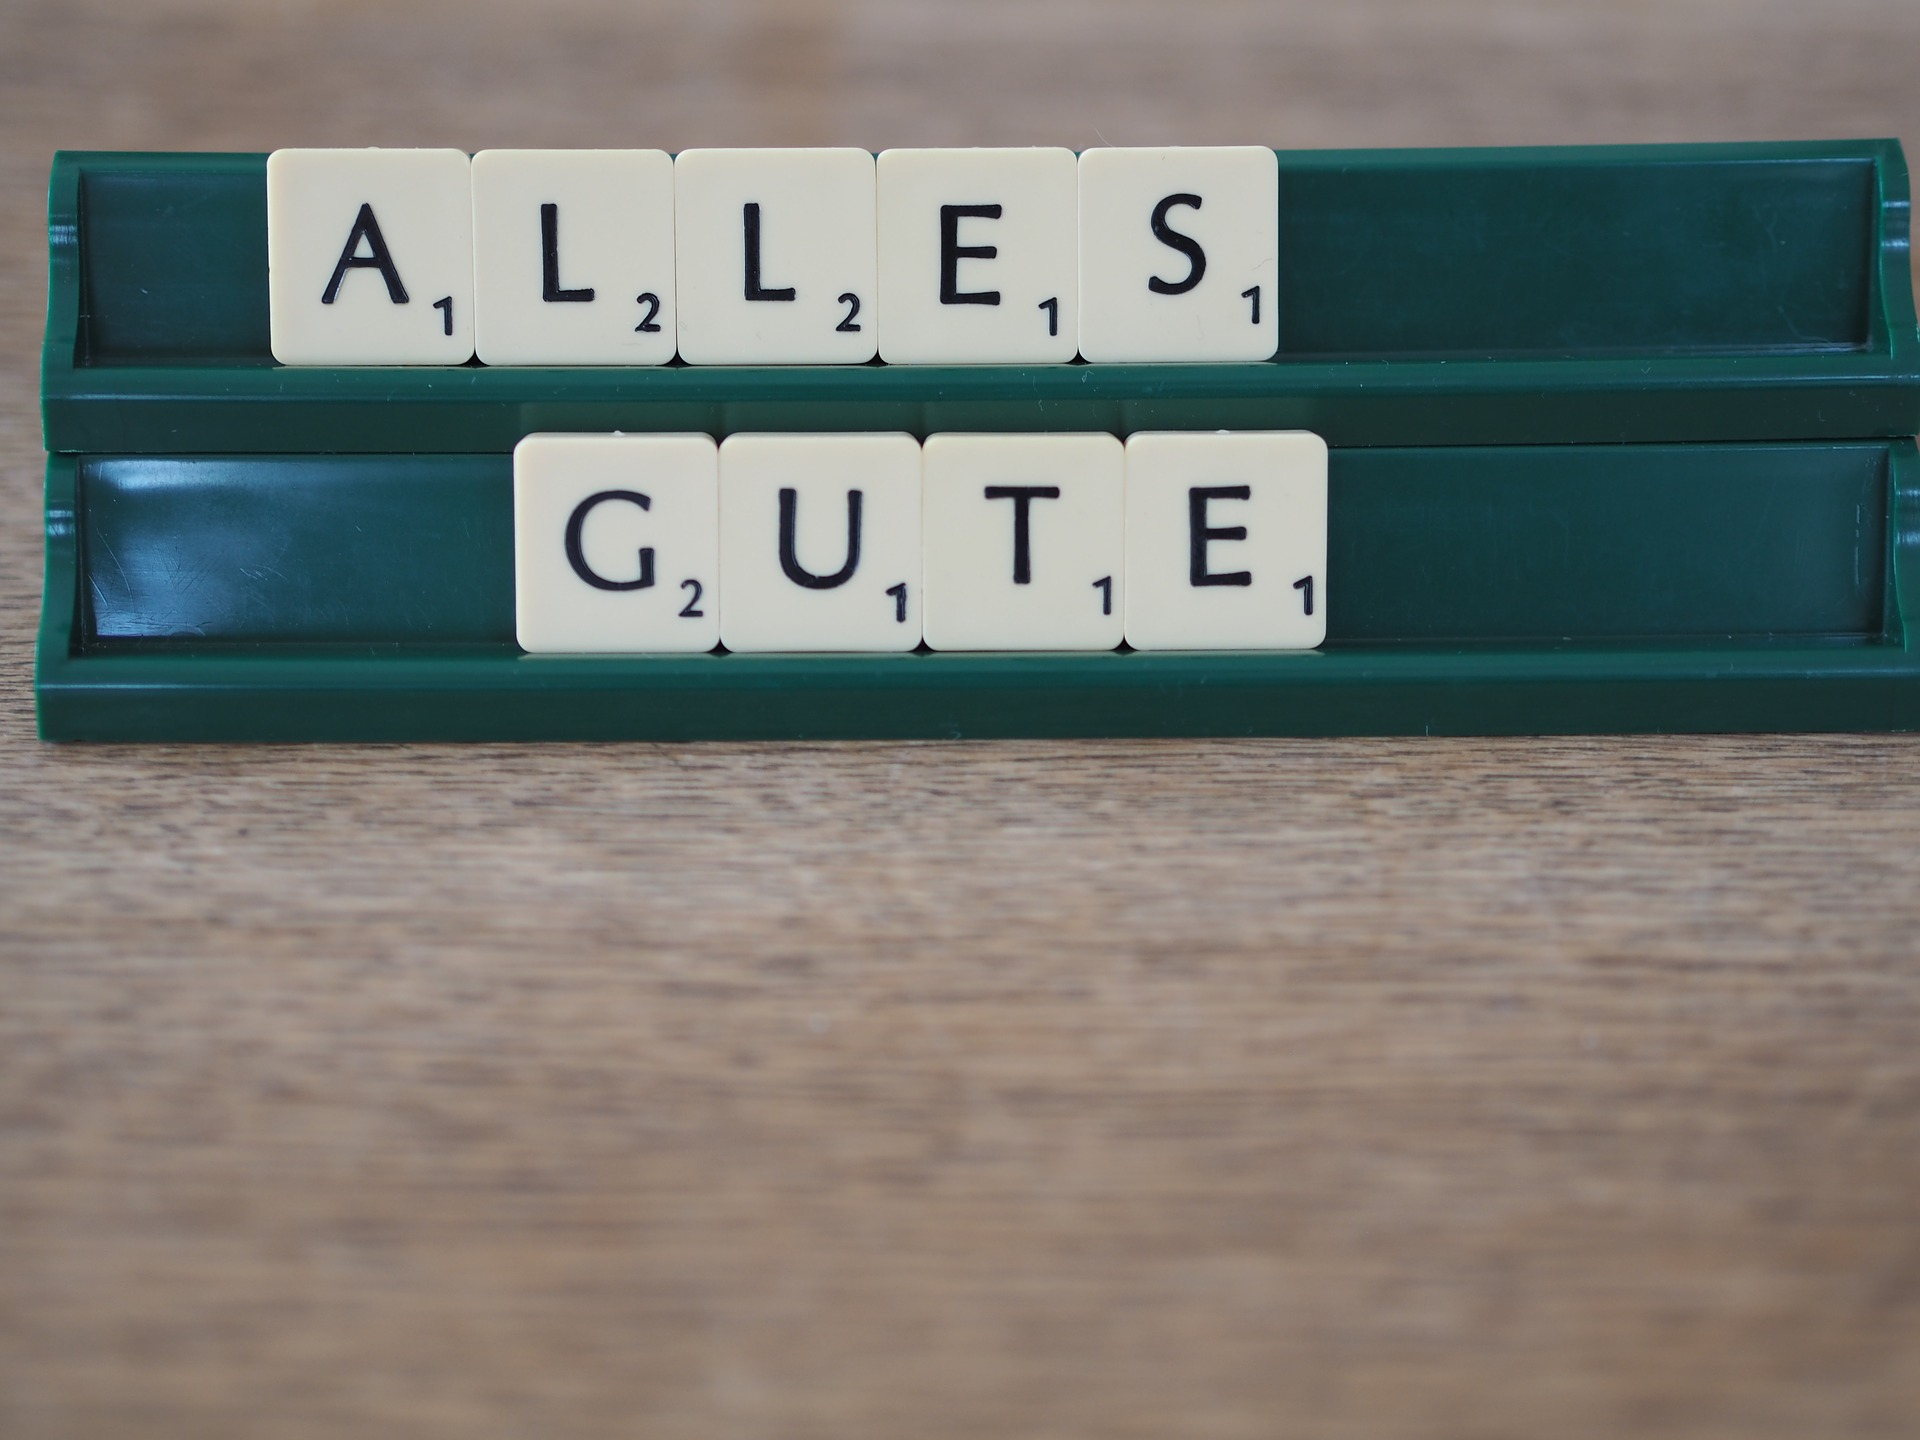 Alles Gute spelled with scrabble letters